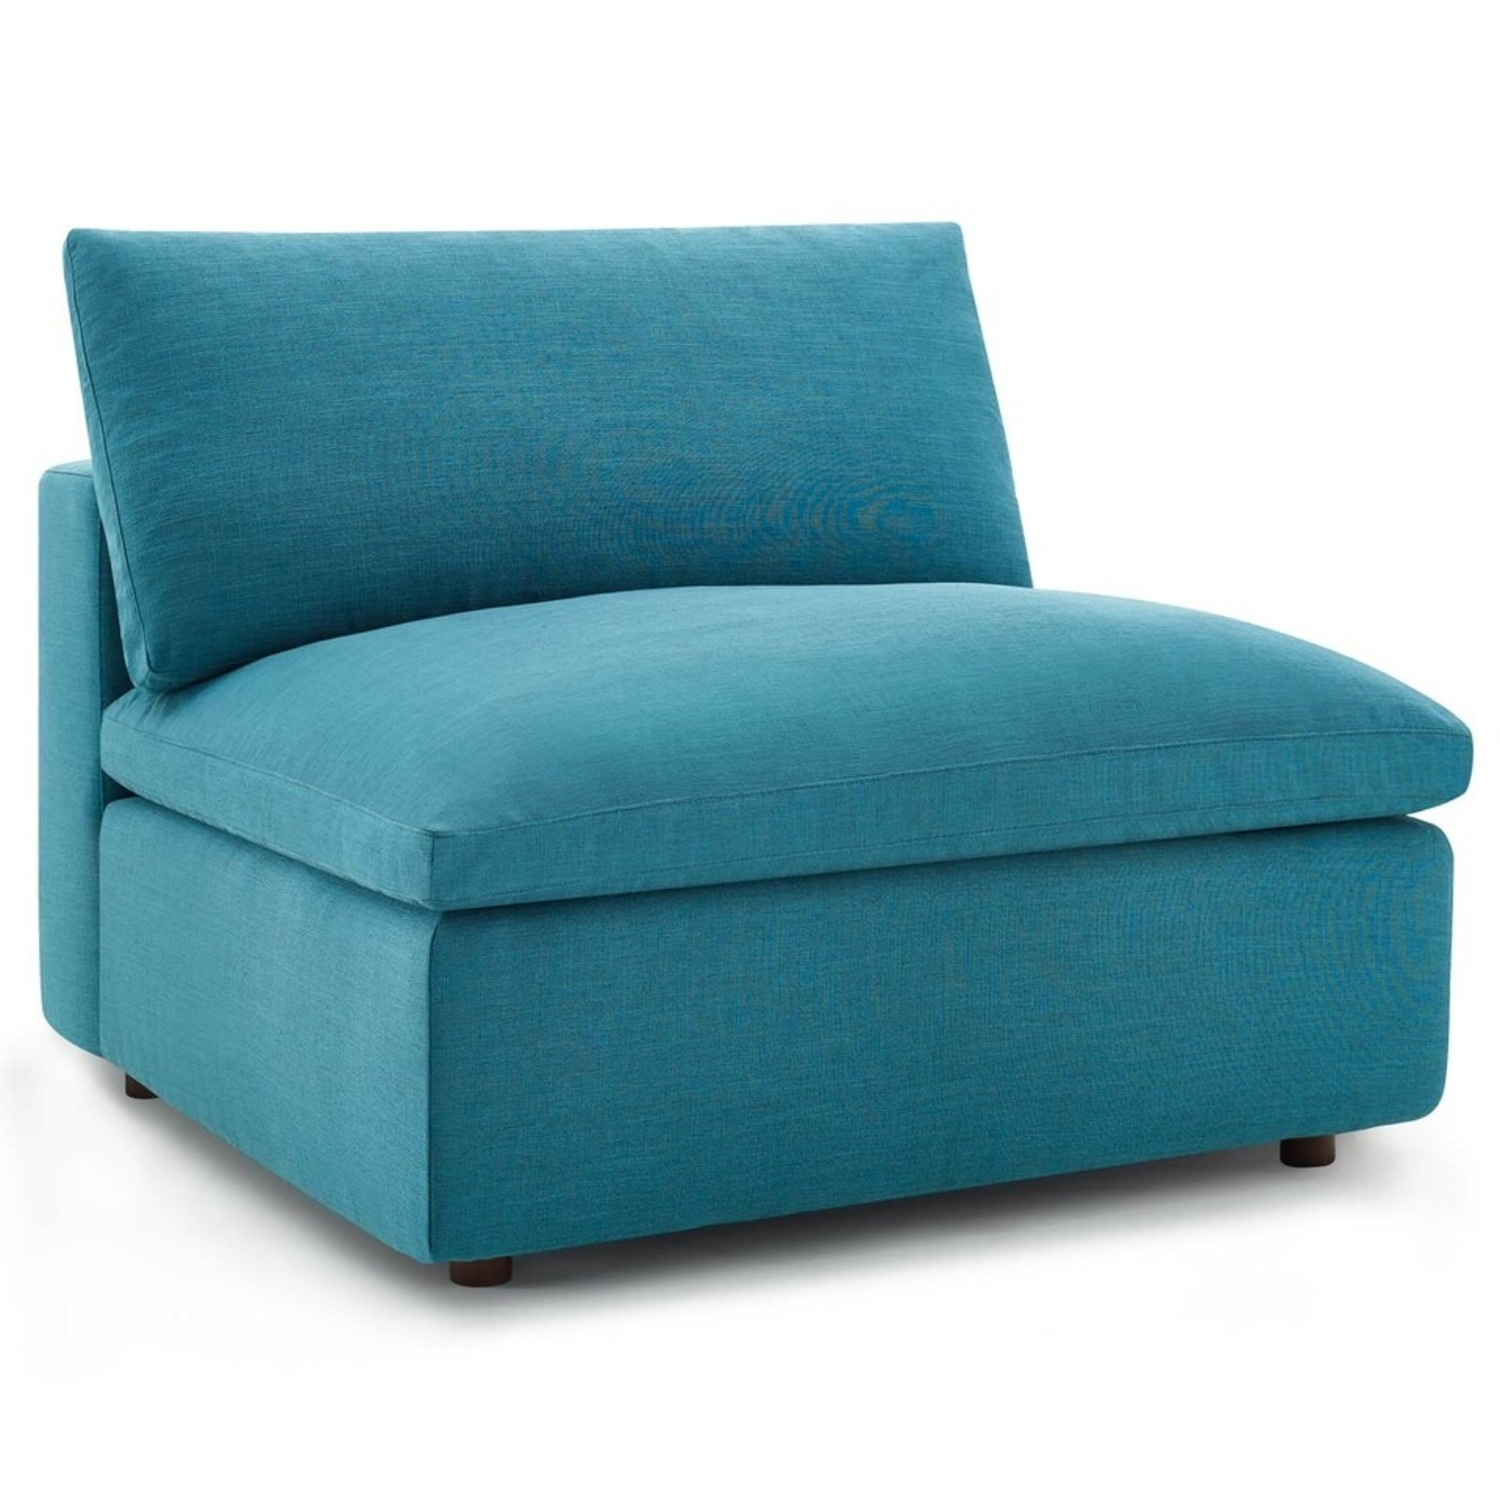 4-Piece Sectional In Teal Polyester & Linen Fabric - image-3